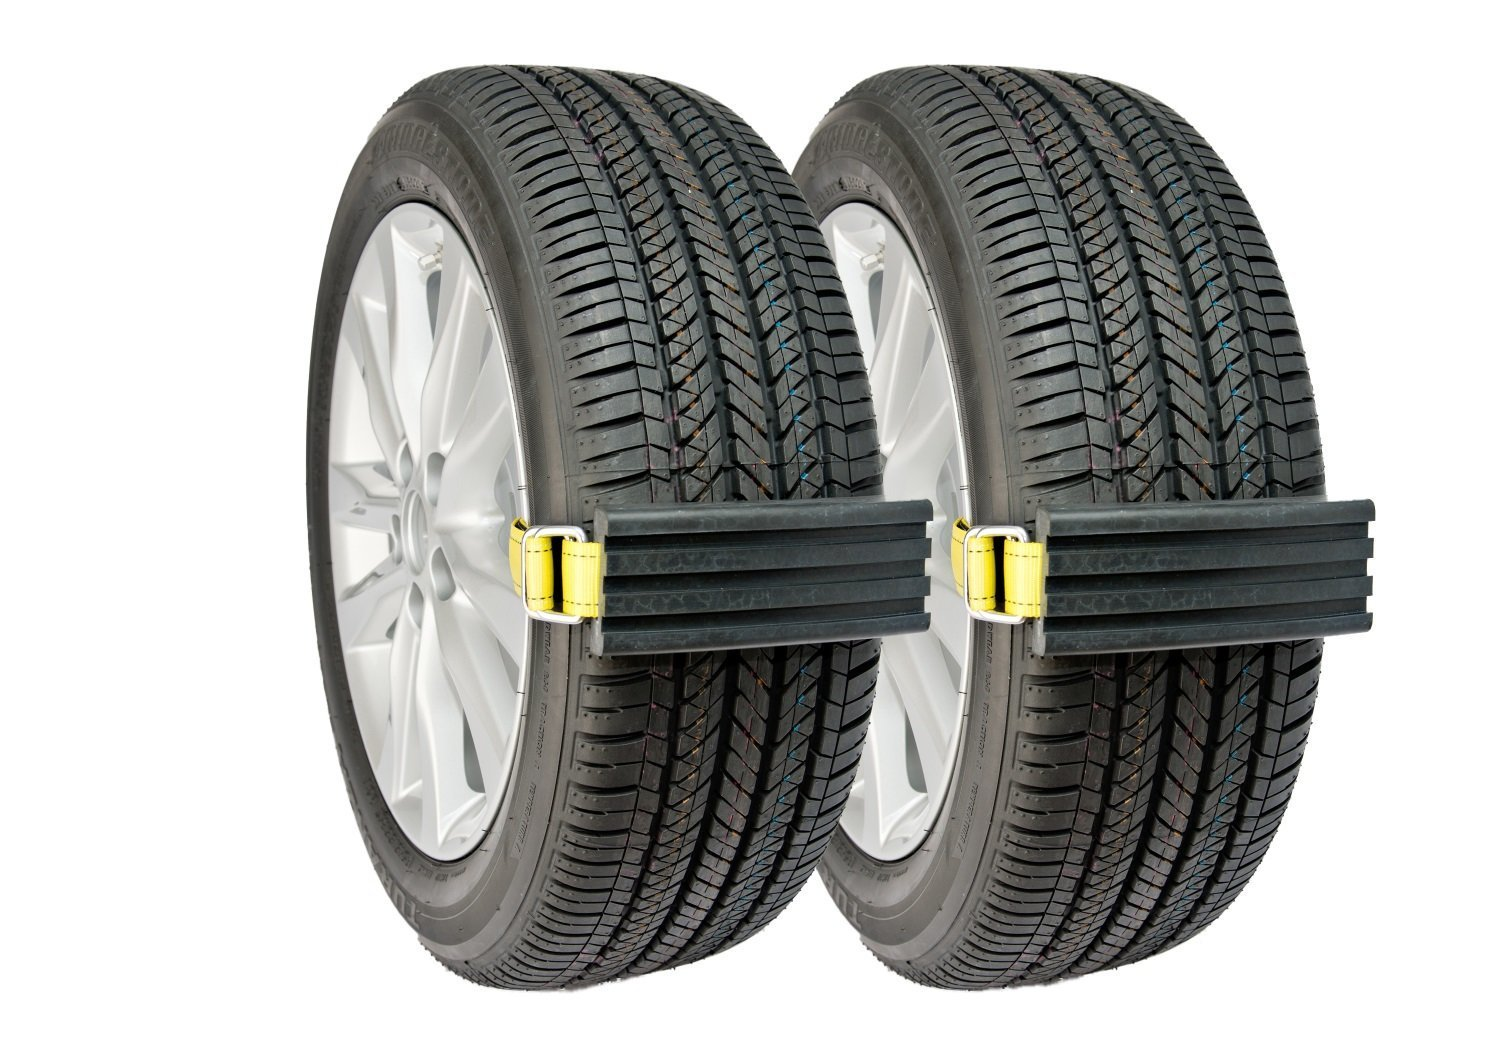 Trac-Grabber – Snow, Mud and Sand Tire Traction Device for Cars and Small SUVs – Set of 2 – A Chain / Snow Tire Alternative That Helps You Get Unstuck – Easy Install Blocks Strap To Your Vehicle Tires